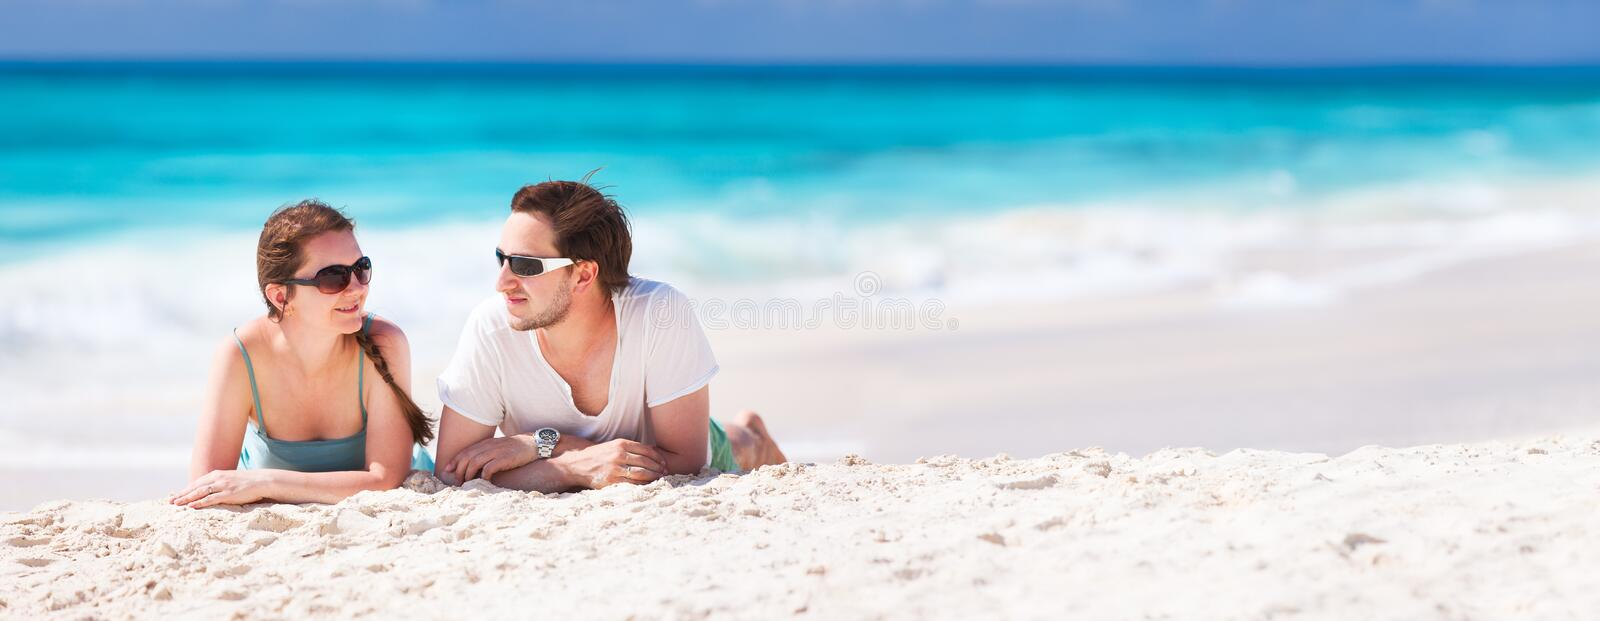 Download Couple on a tropical beach stock image. Image of outdoor - 29971135